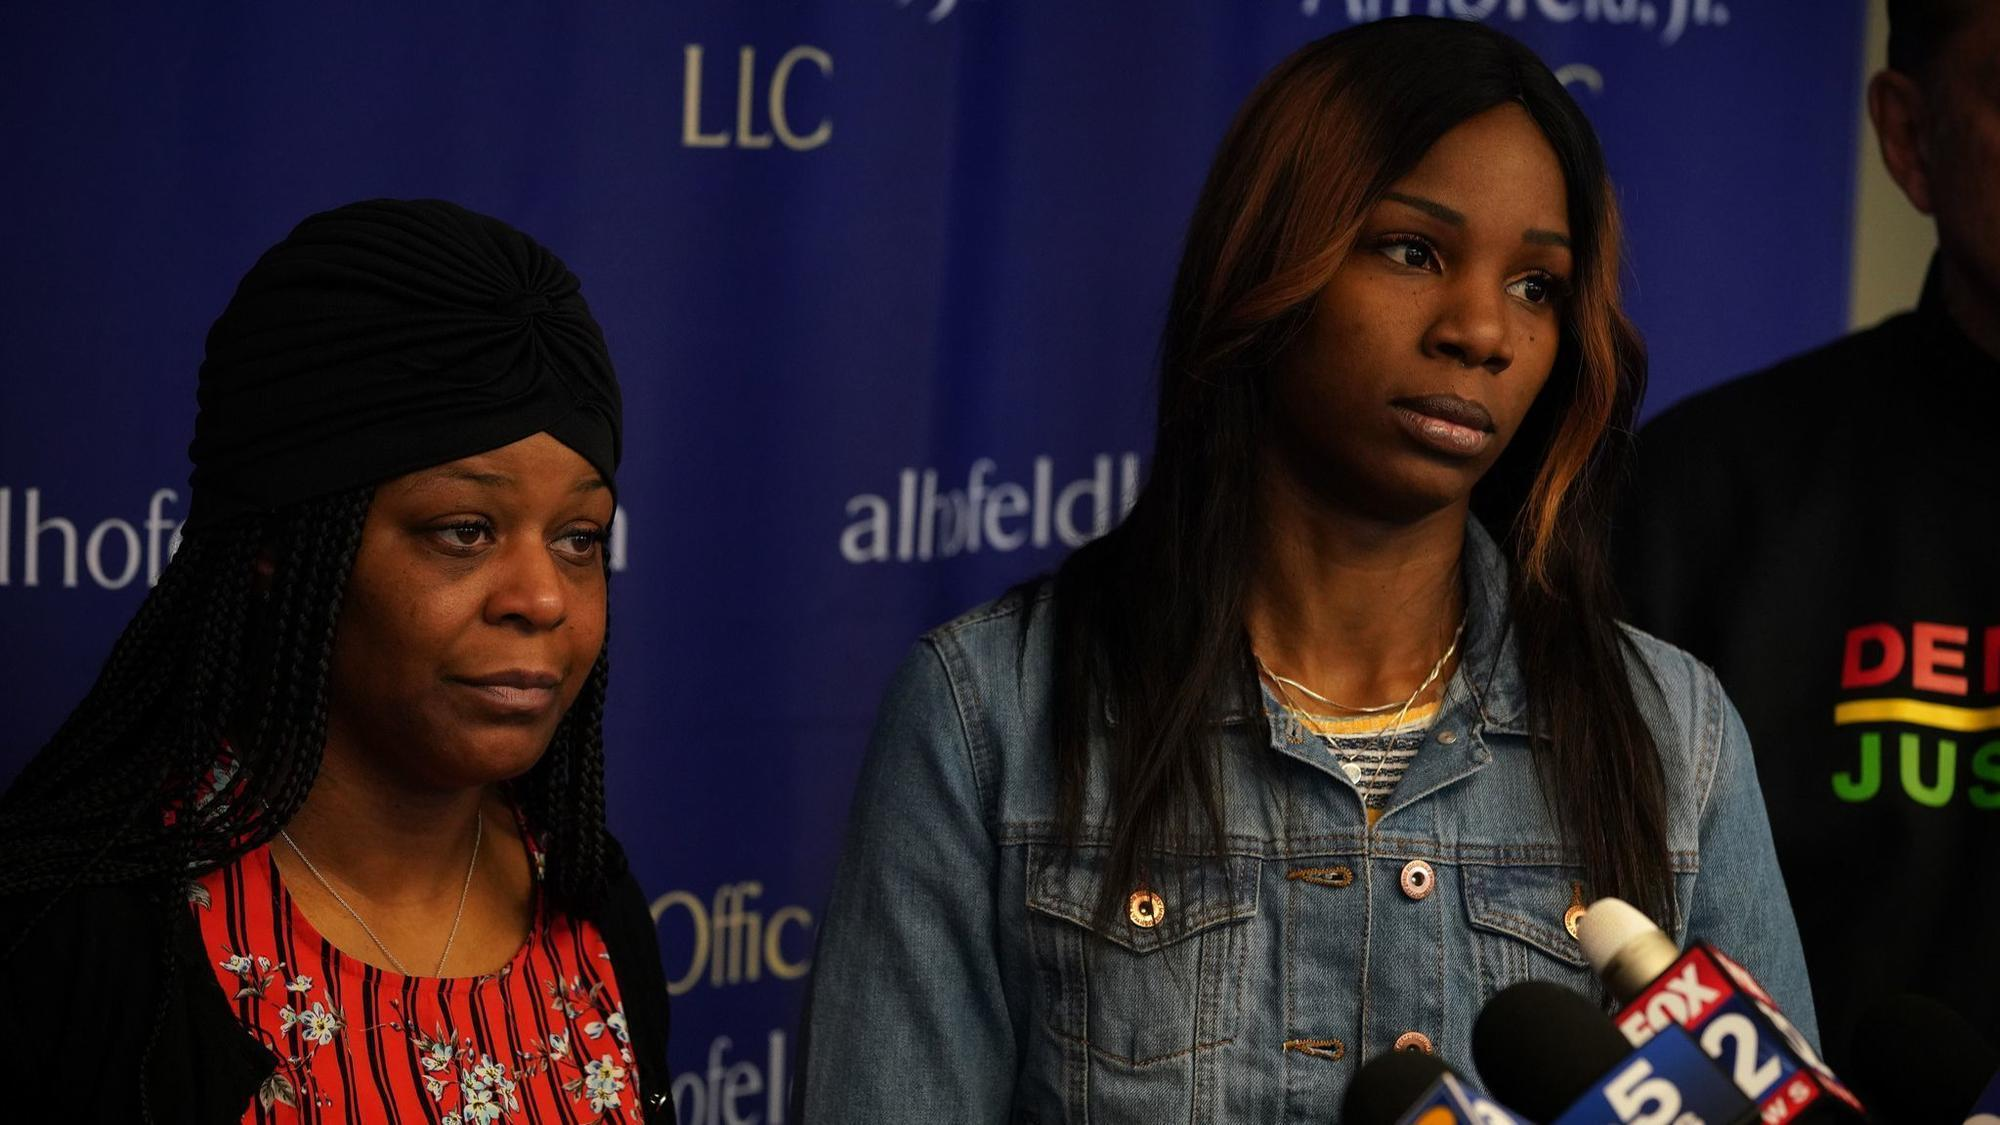 Guns Drawn Parents Cuffed Cake Smashed Lawsuit Claims Chicago Police Raided Wrong Home During Boys 4th Birthday Party